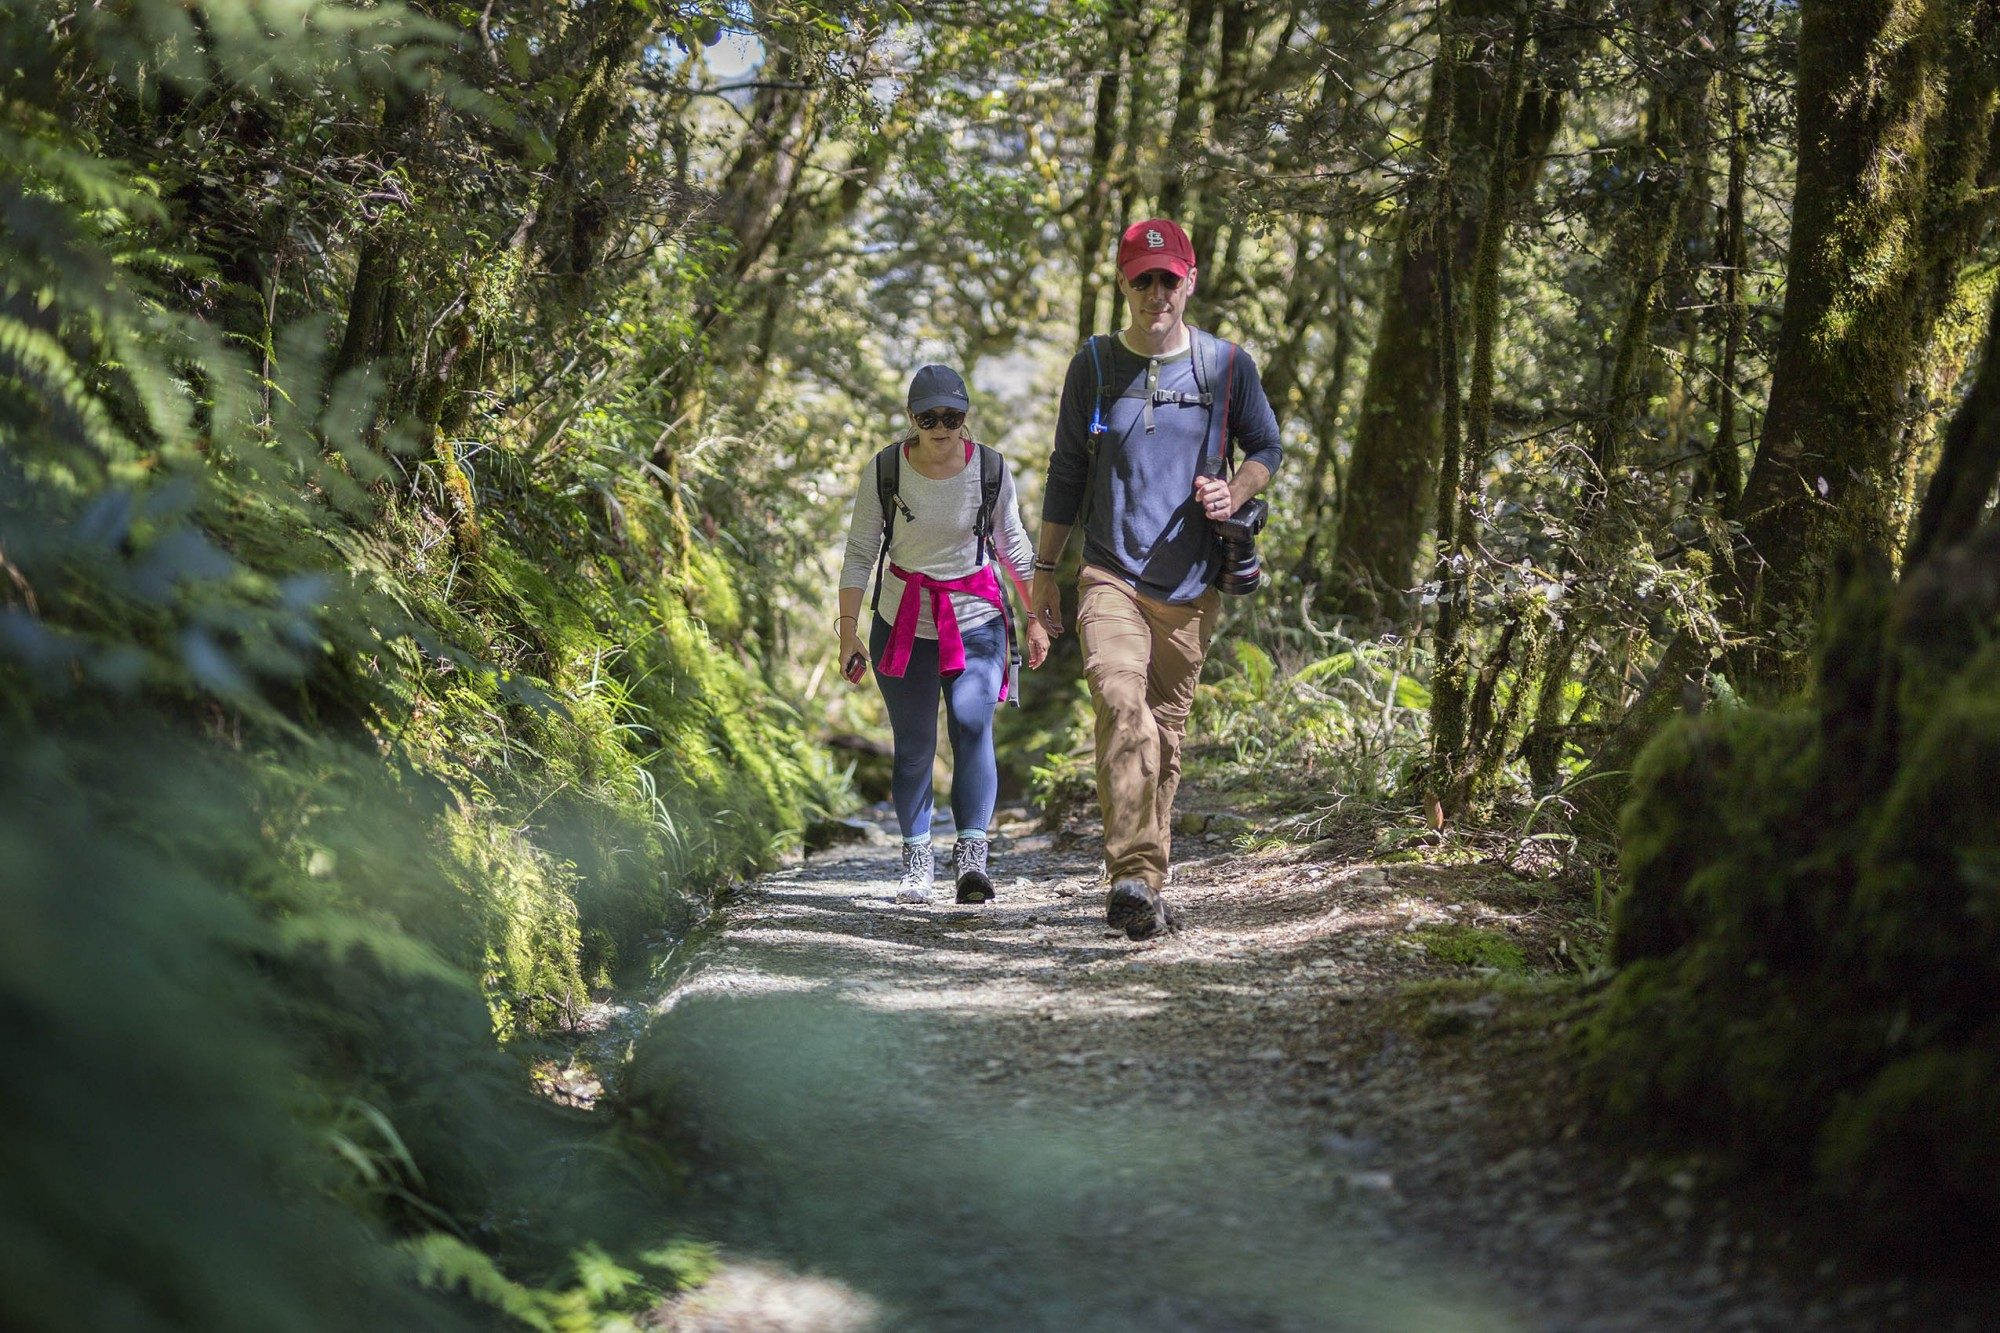 two hikers on the Routeburn trail walking uphill